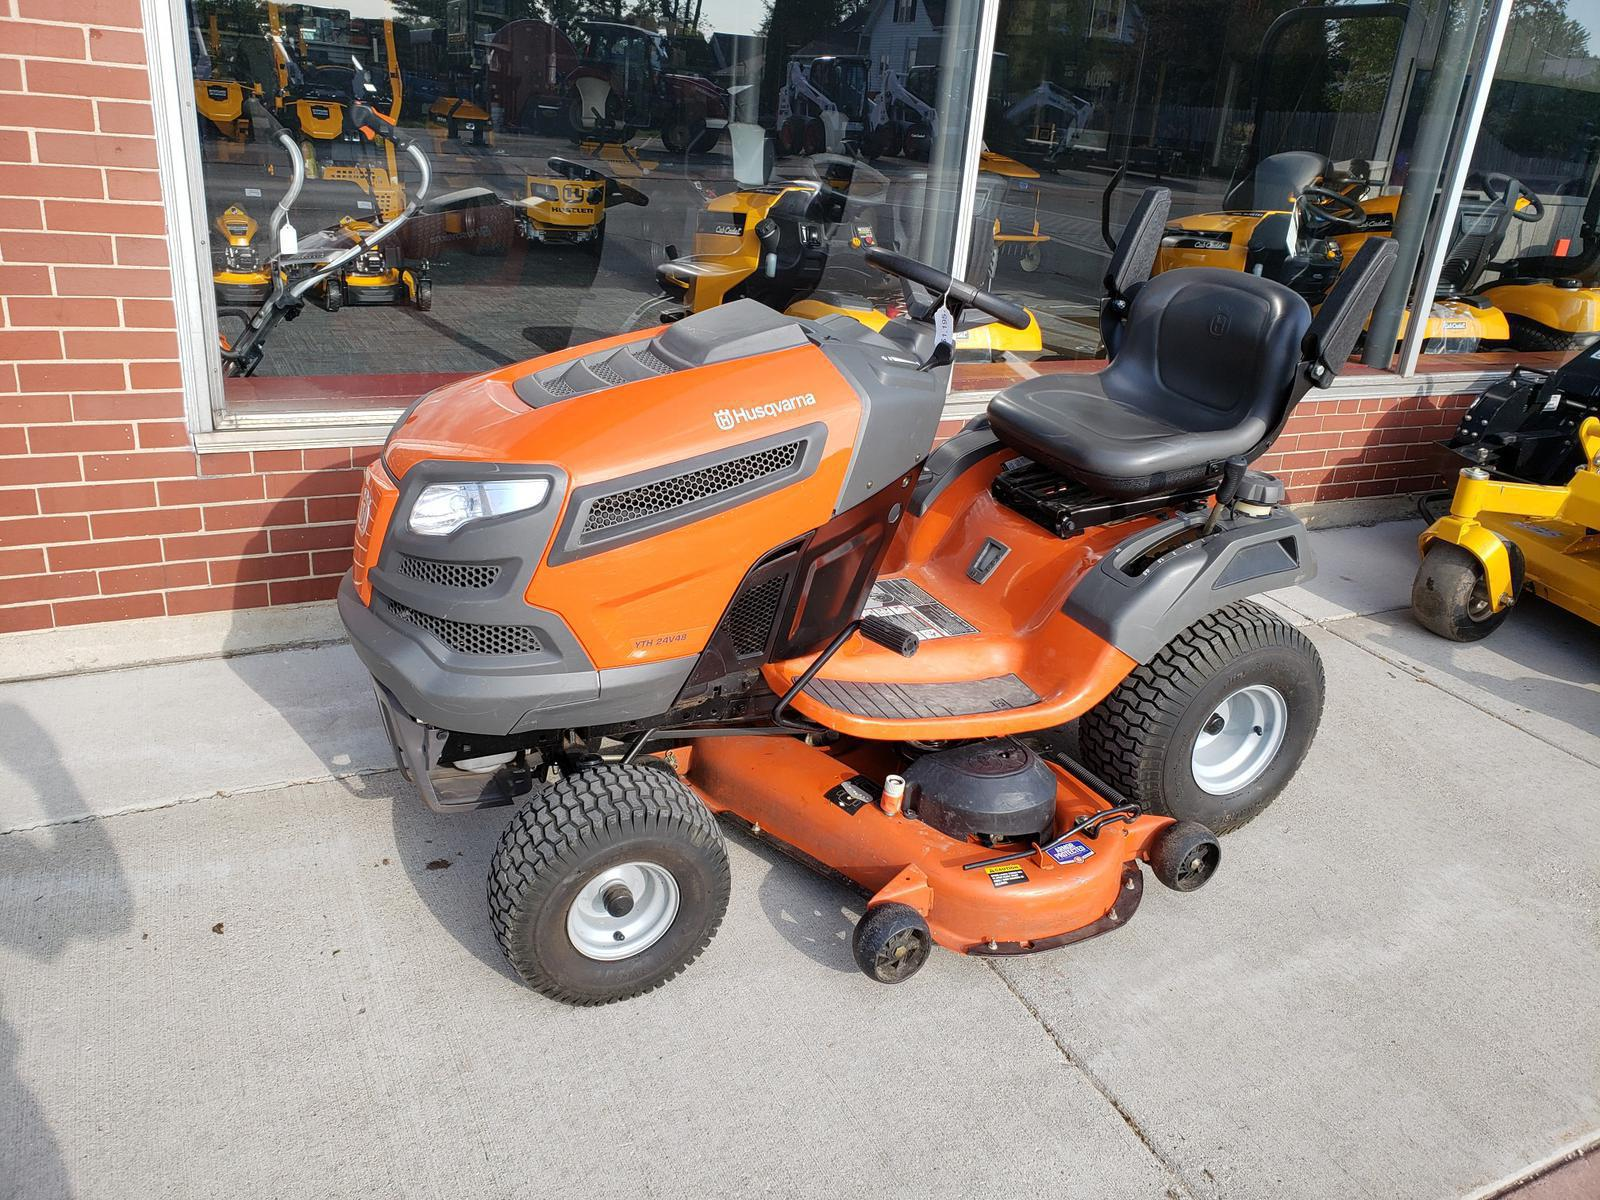 How To Make A Hydrostatic Lawn Mower Faster